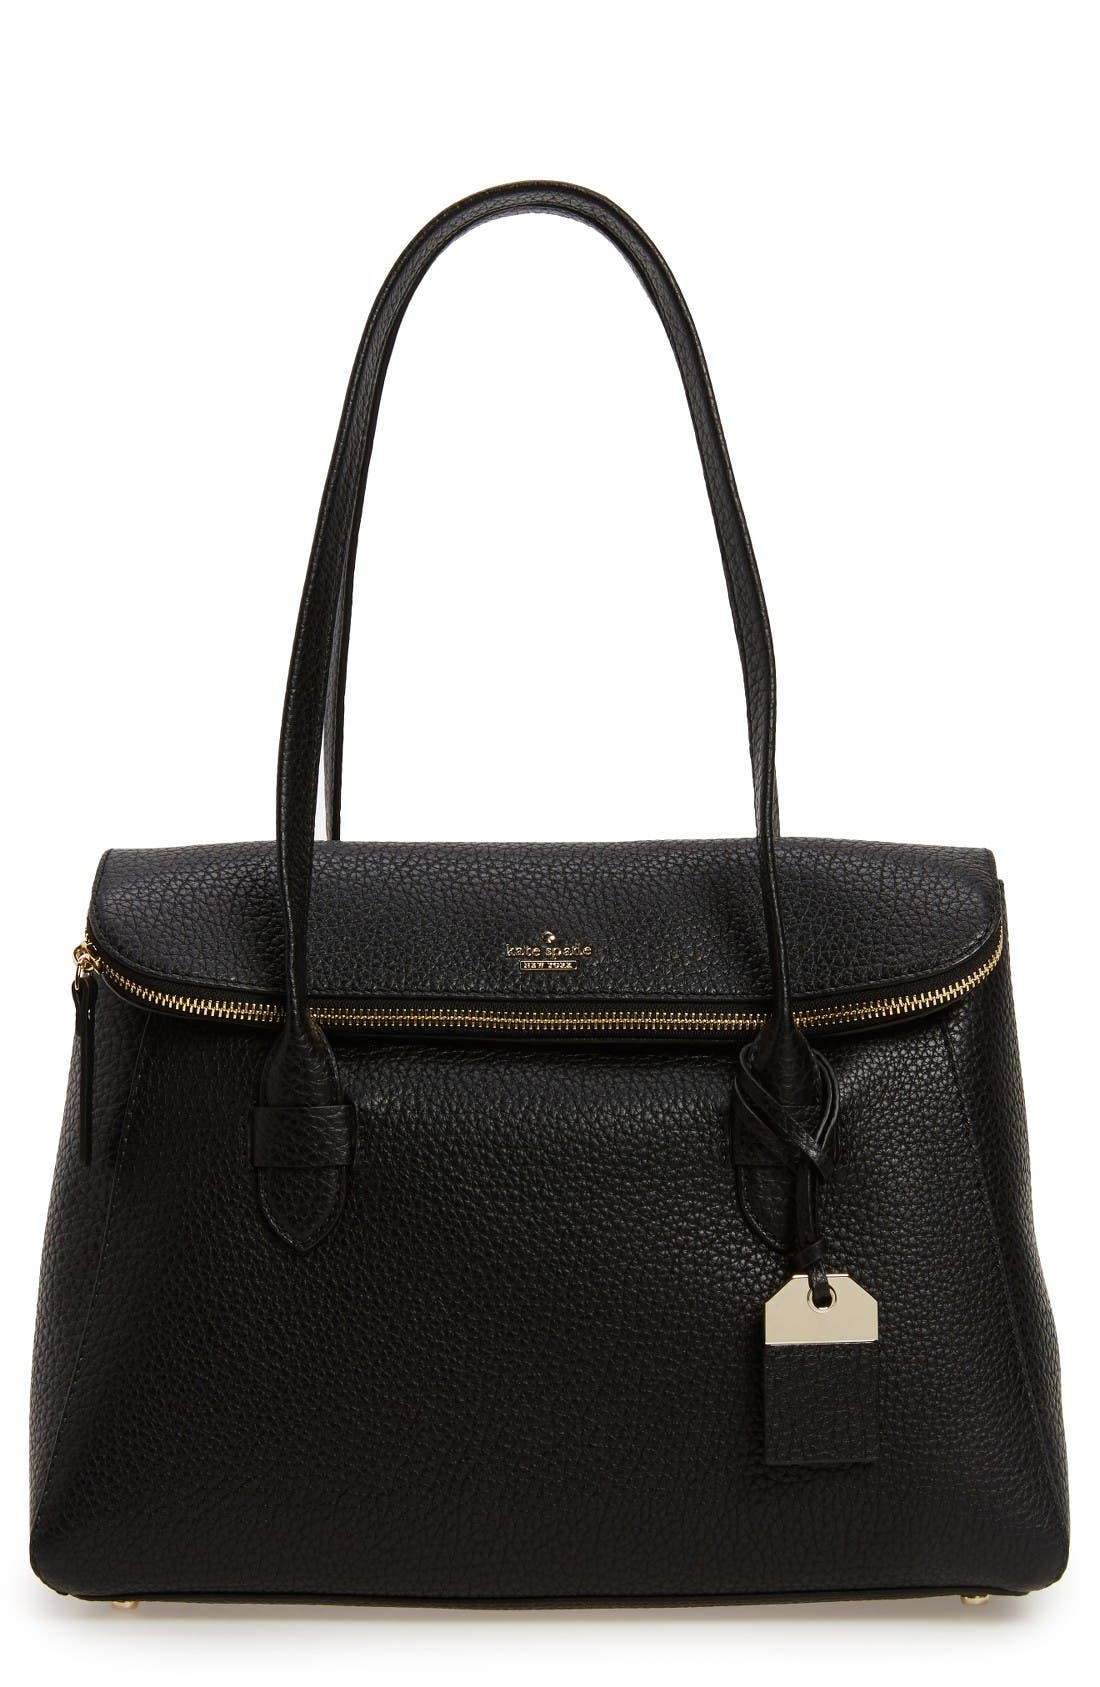 Alternate Image 1 Selected - kate spade new york carter street - laurelle leather tote